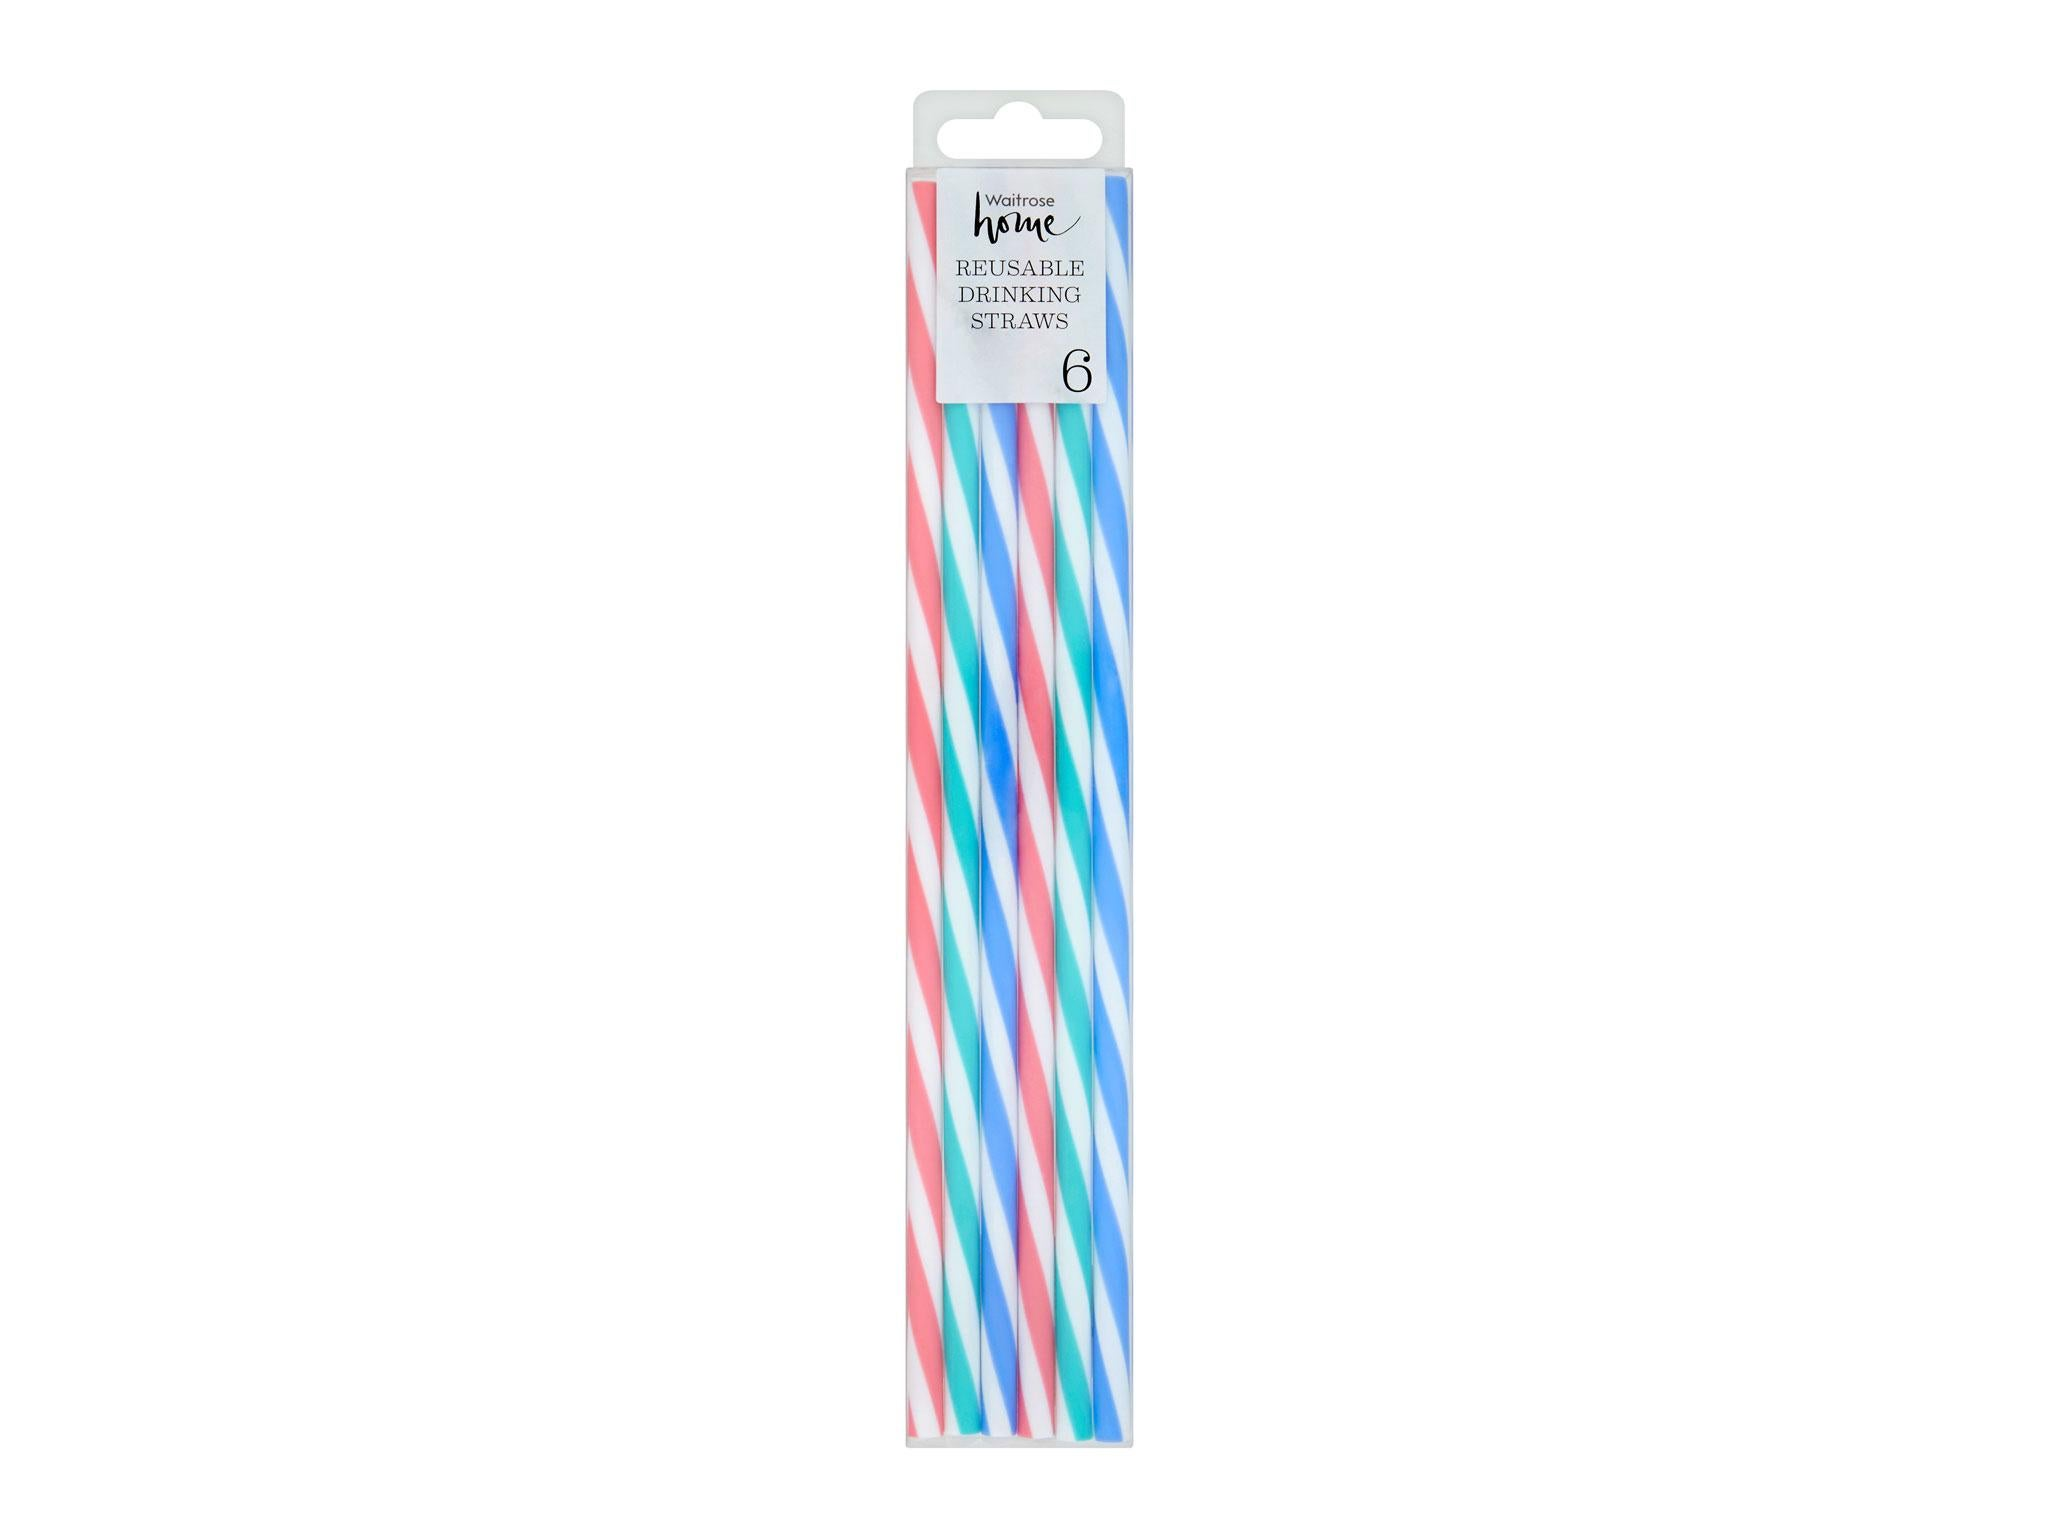 8 best reusable straws | The Independent